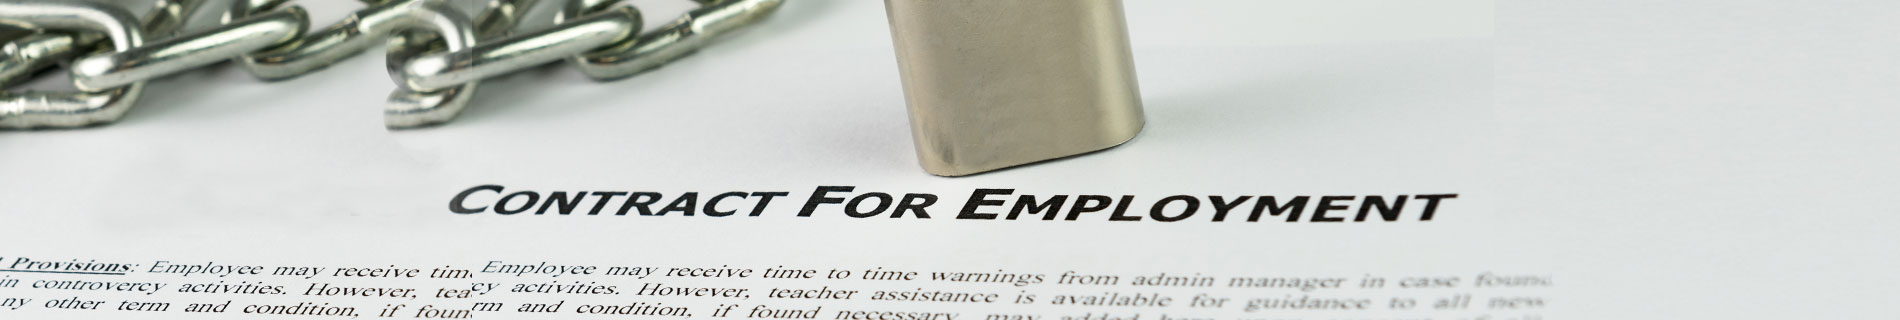 Pleasanton Employment Contracts  Benefits Compensation  Termination